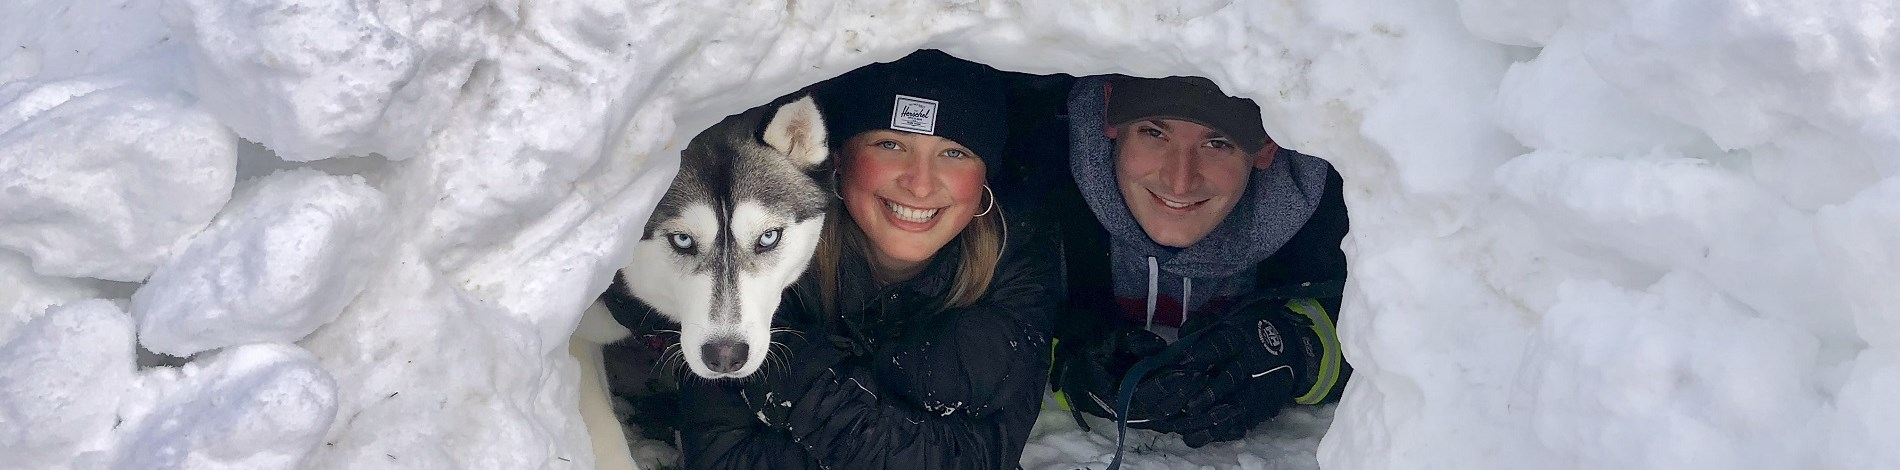 Woman-man-dog-igloo